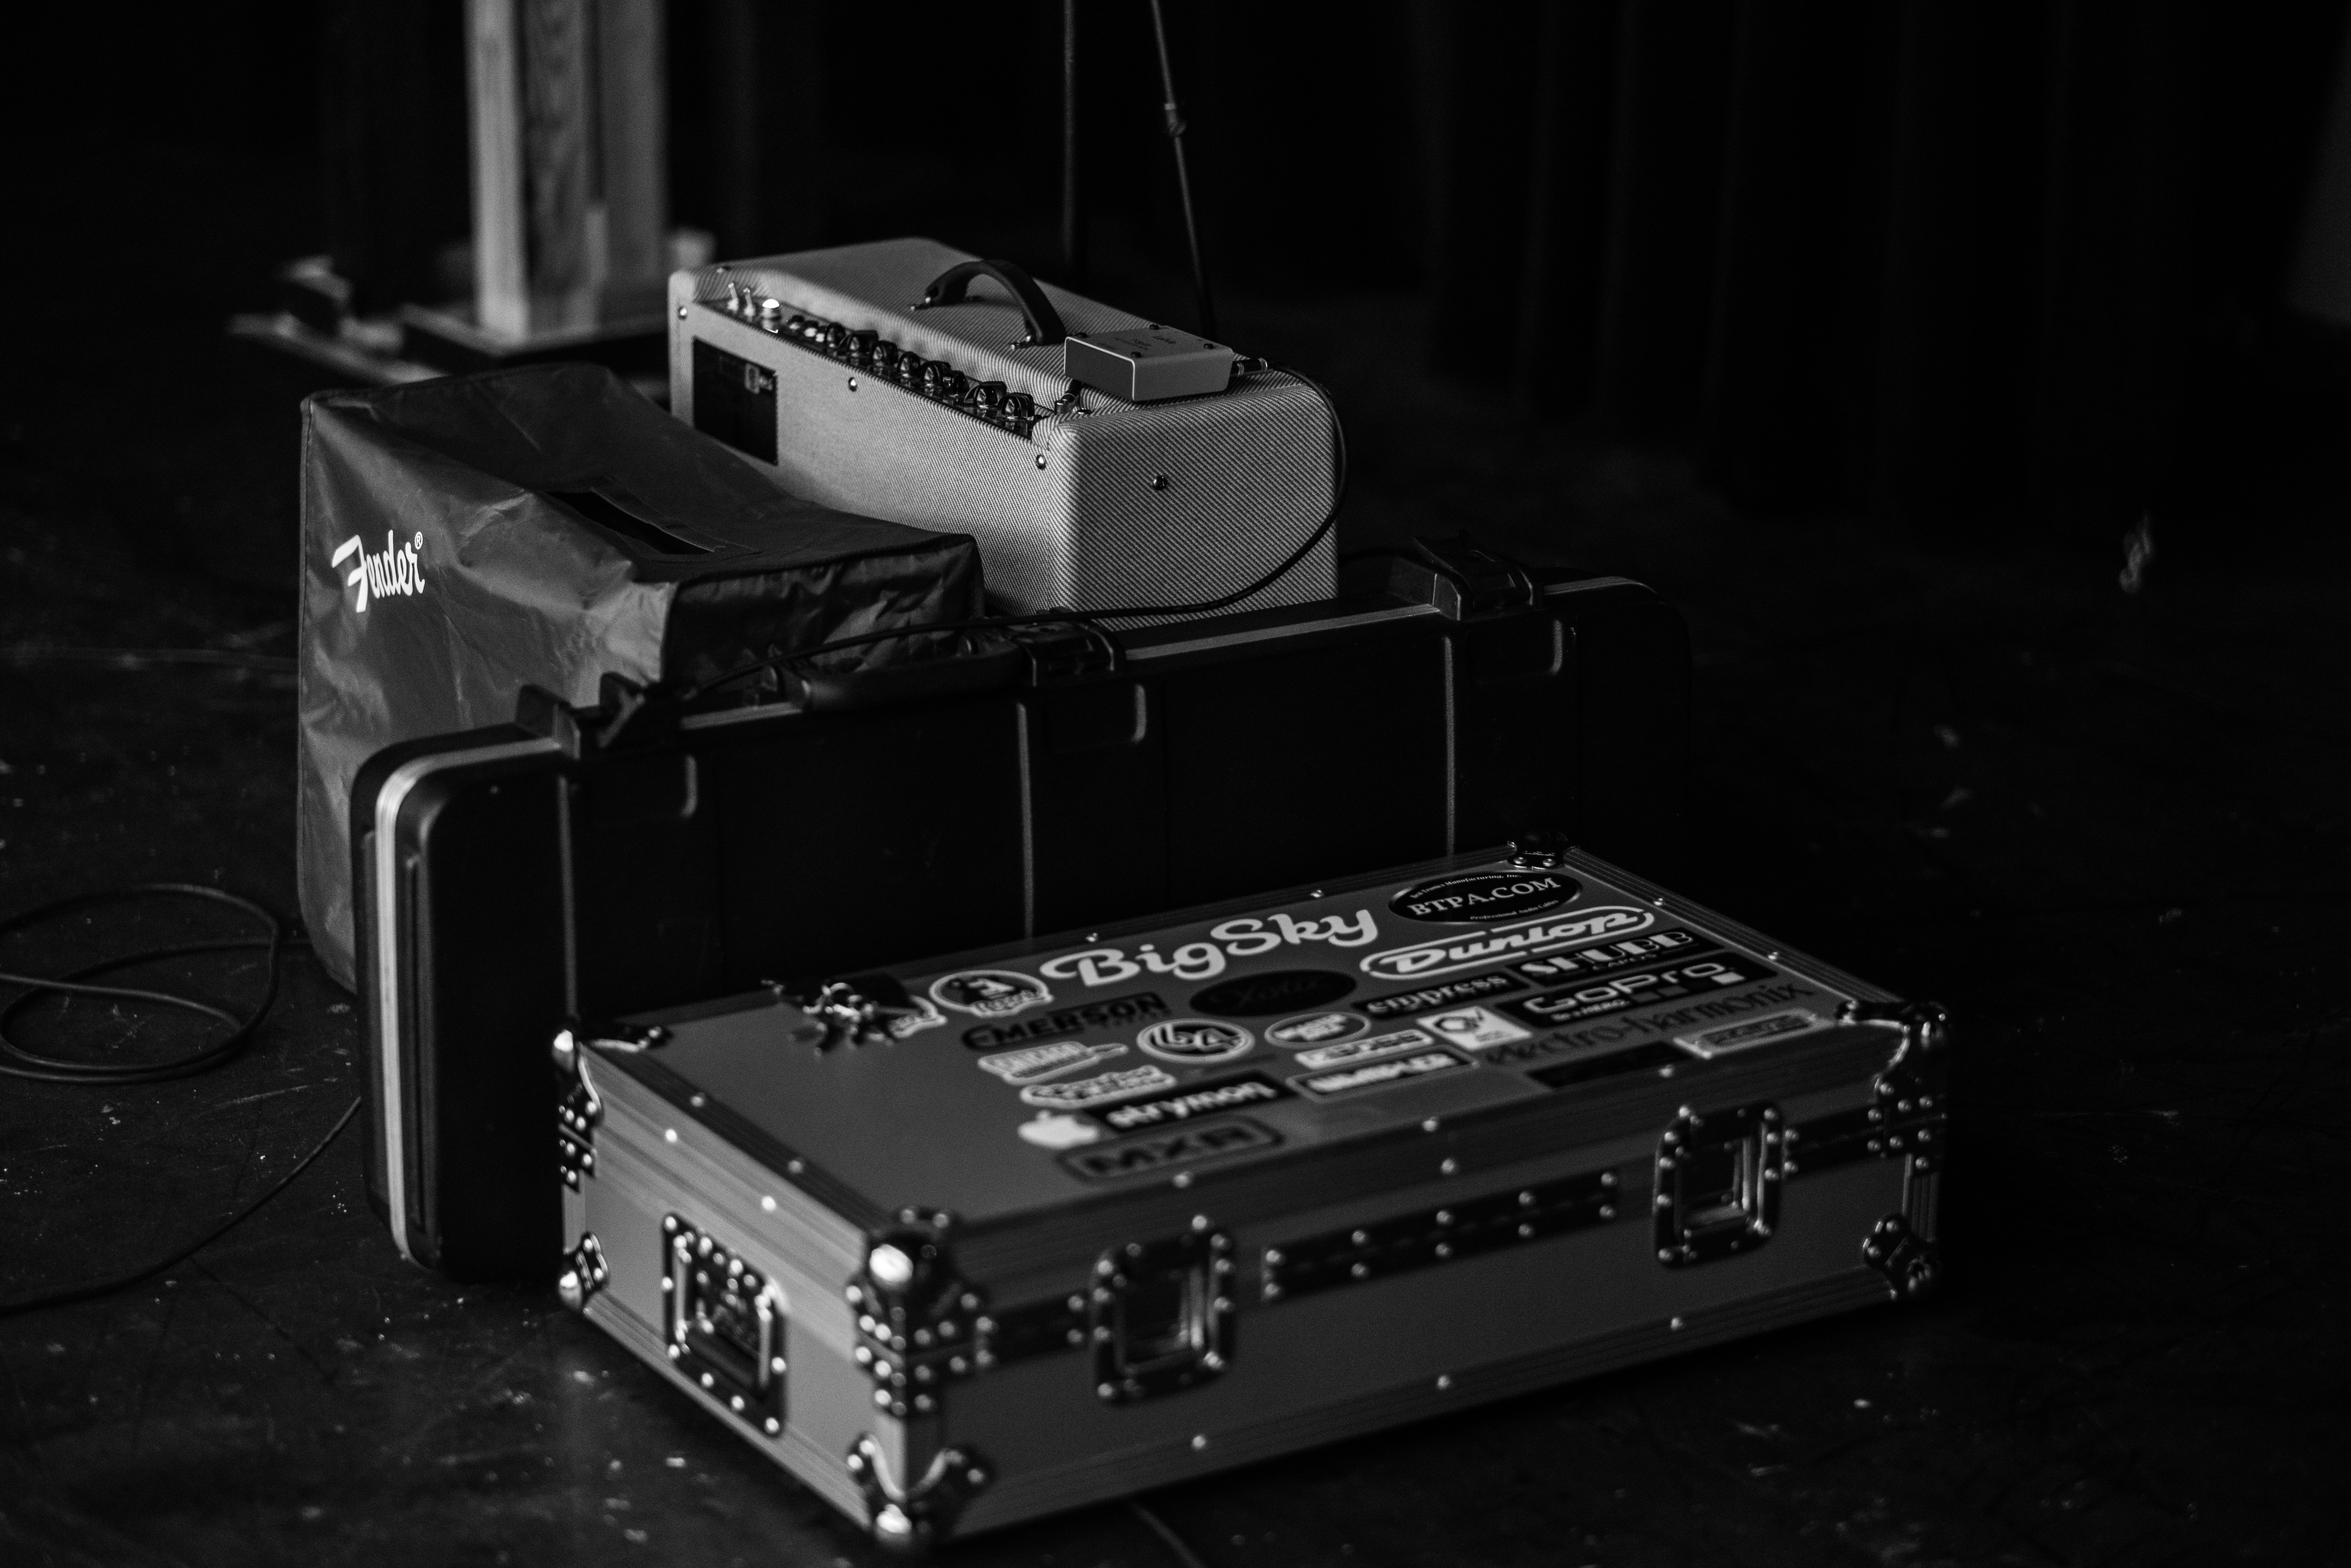 grayscale photography of suitcase